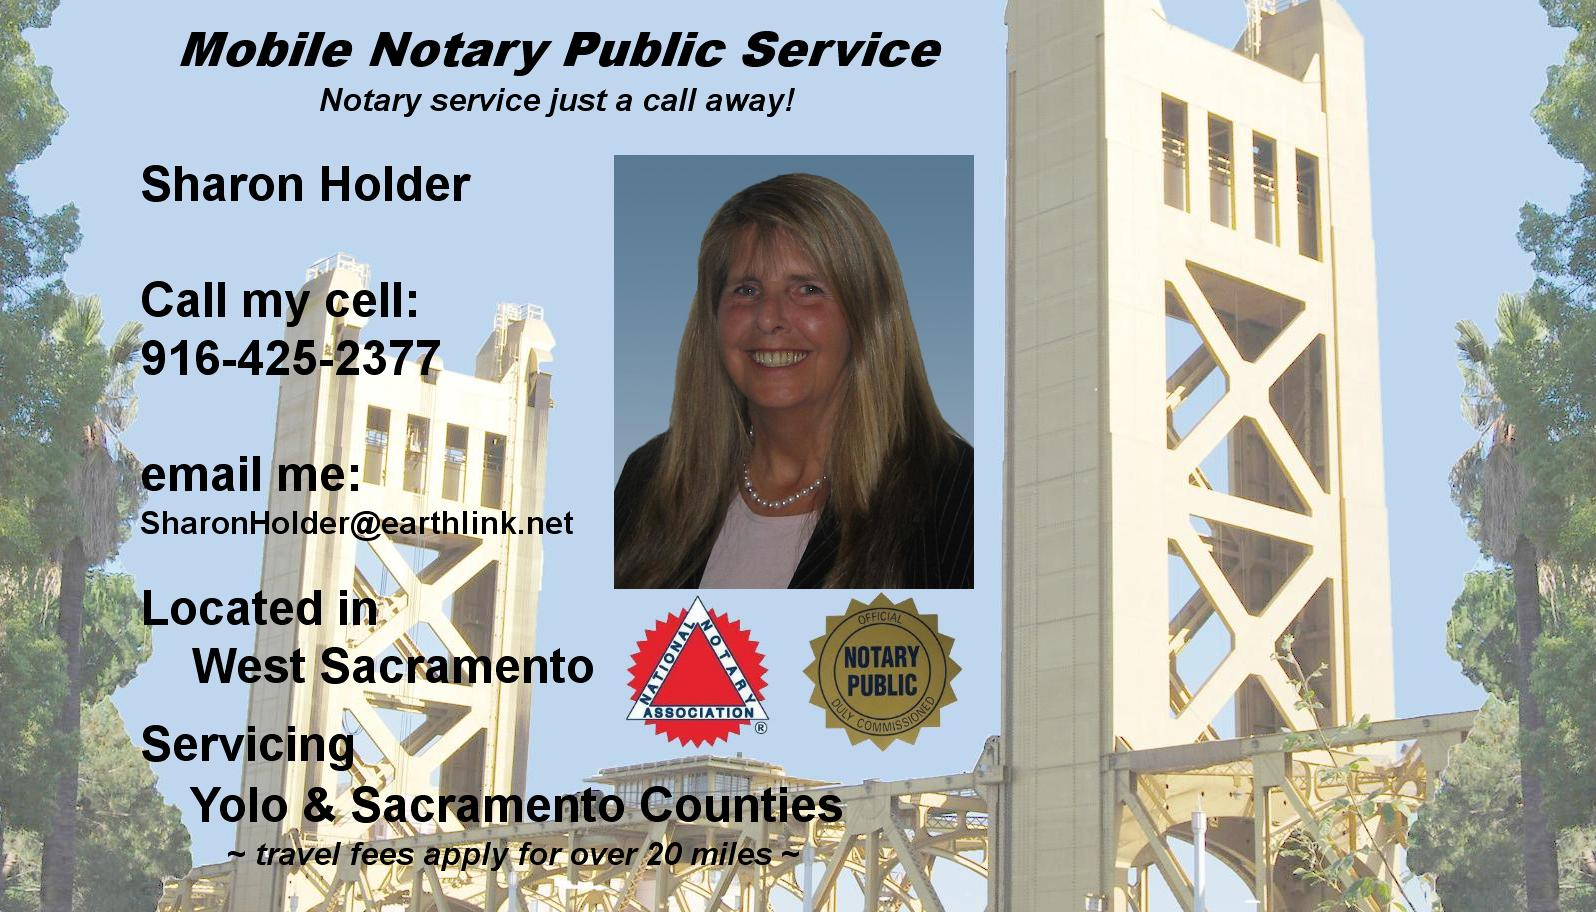 Sharon Holder, Mobile Notary Public Service, Yolo and Sacramento Counties